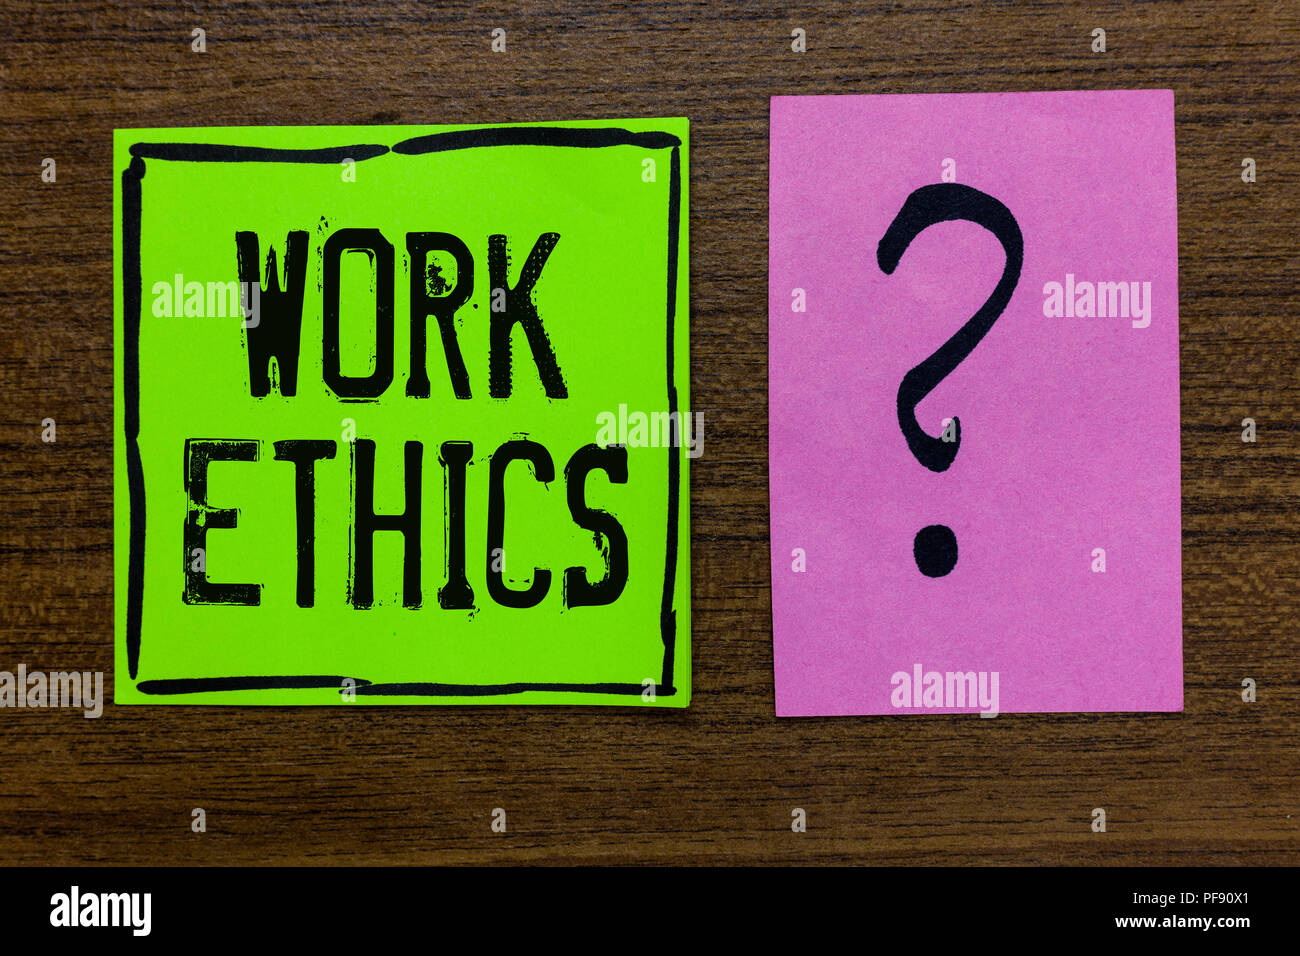 importance of work ethics